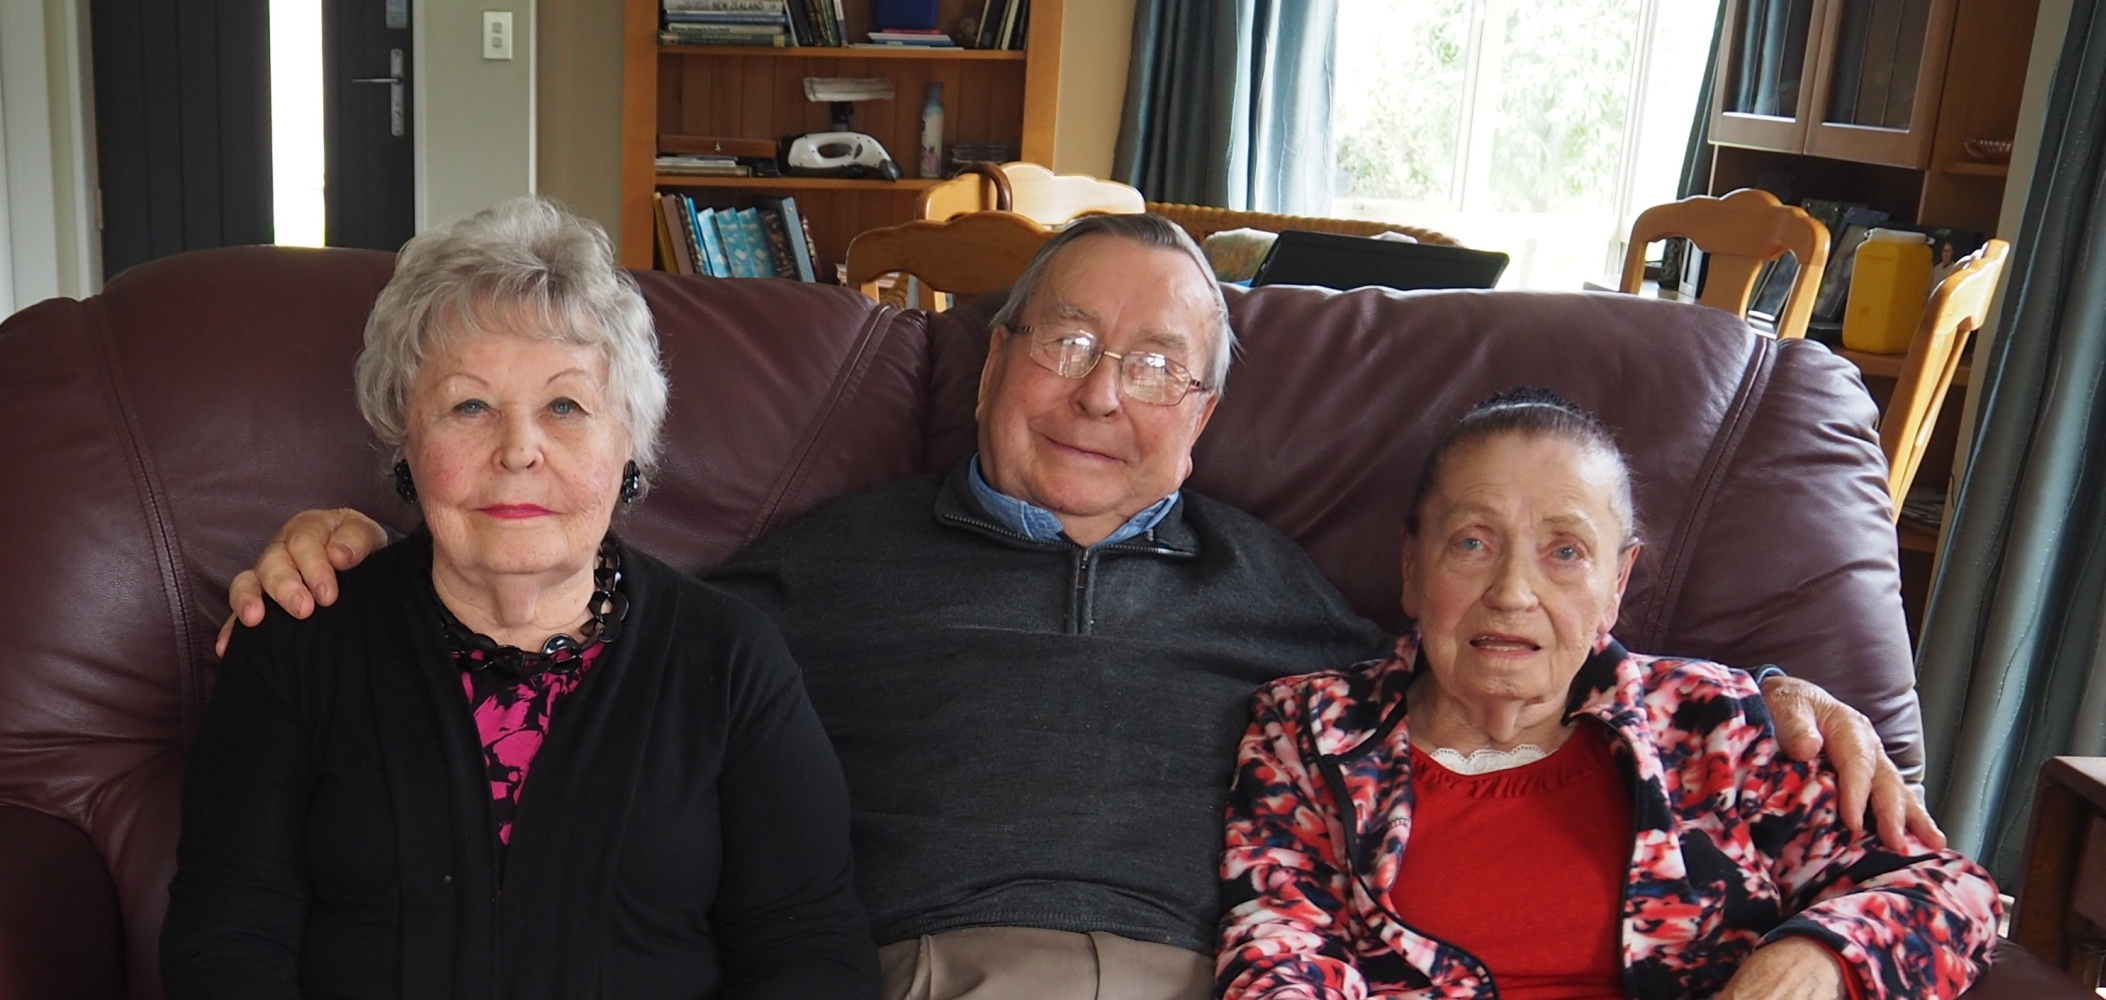 Tadeusz seated between his  sisters, on a couch in his lounge.